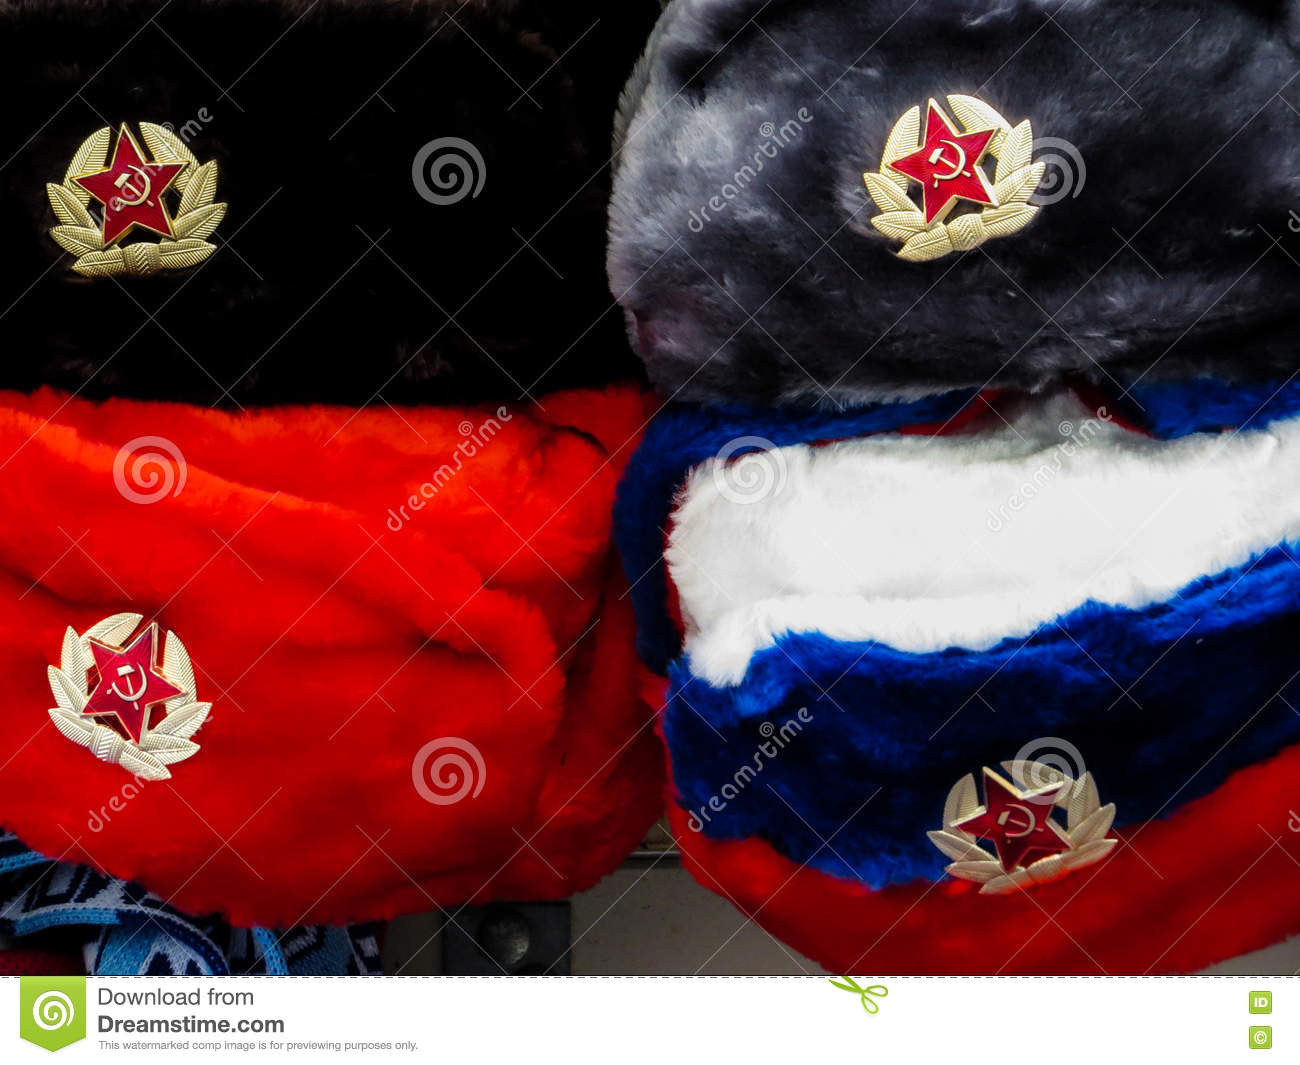 Soviet busby hats editorial stock image  Image of communist